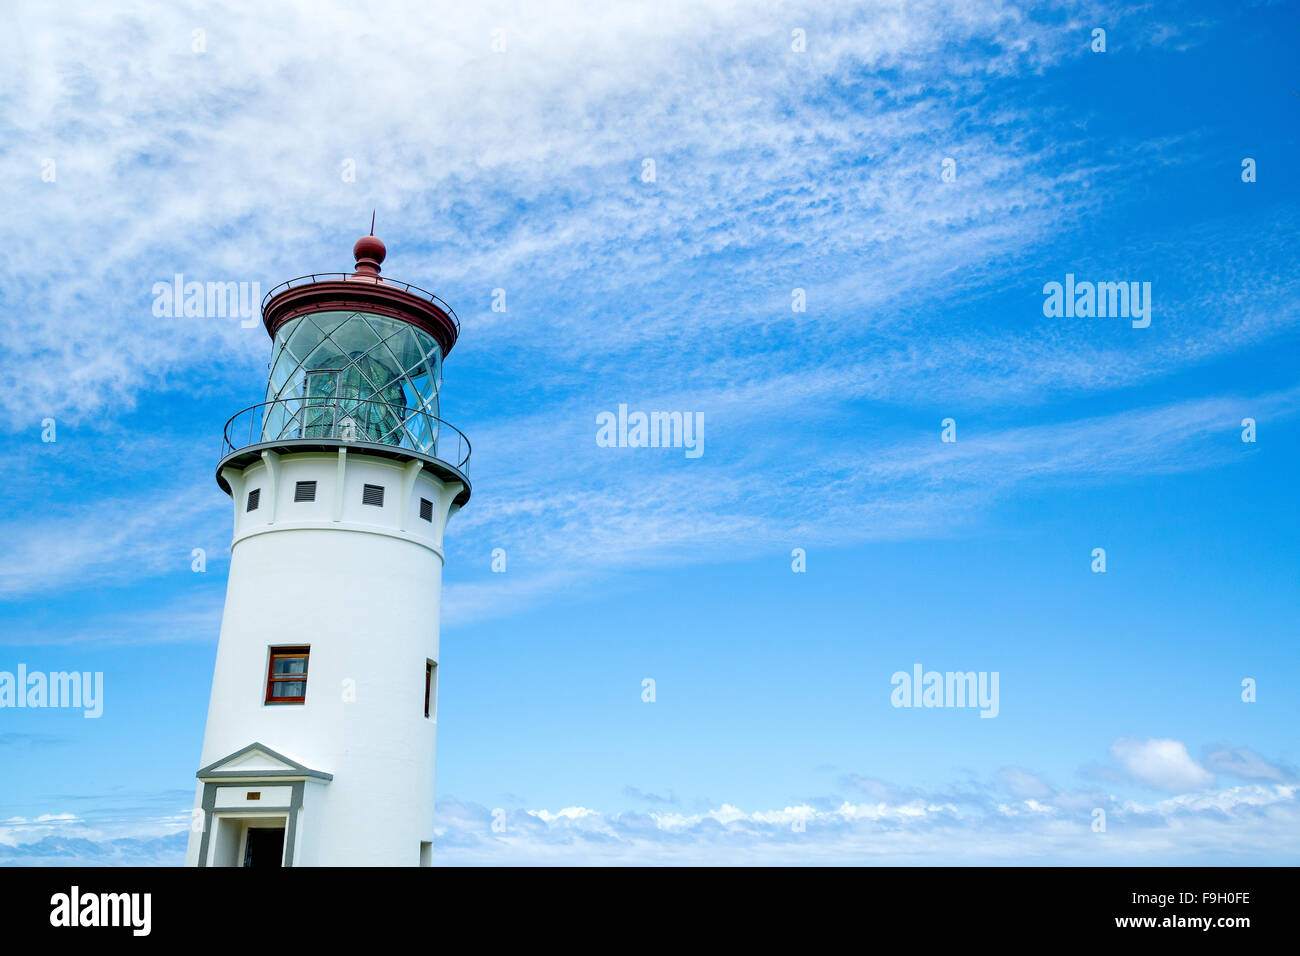 Kilauea Light on Kauai island, Hawaii - Stock Image